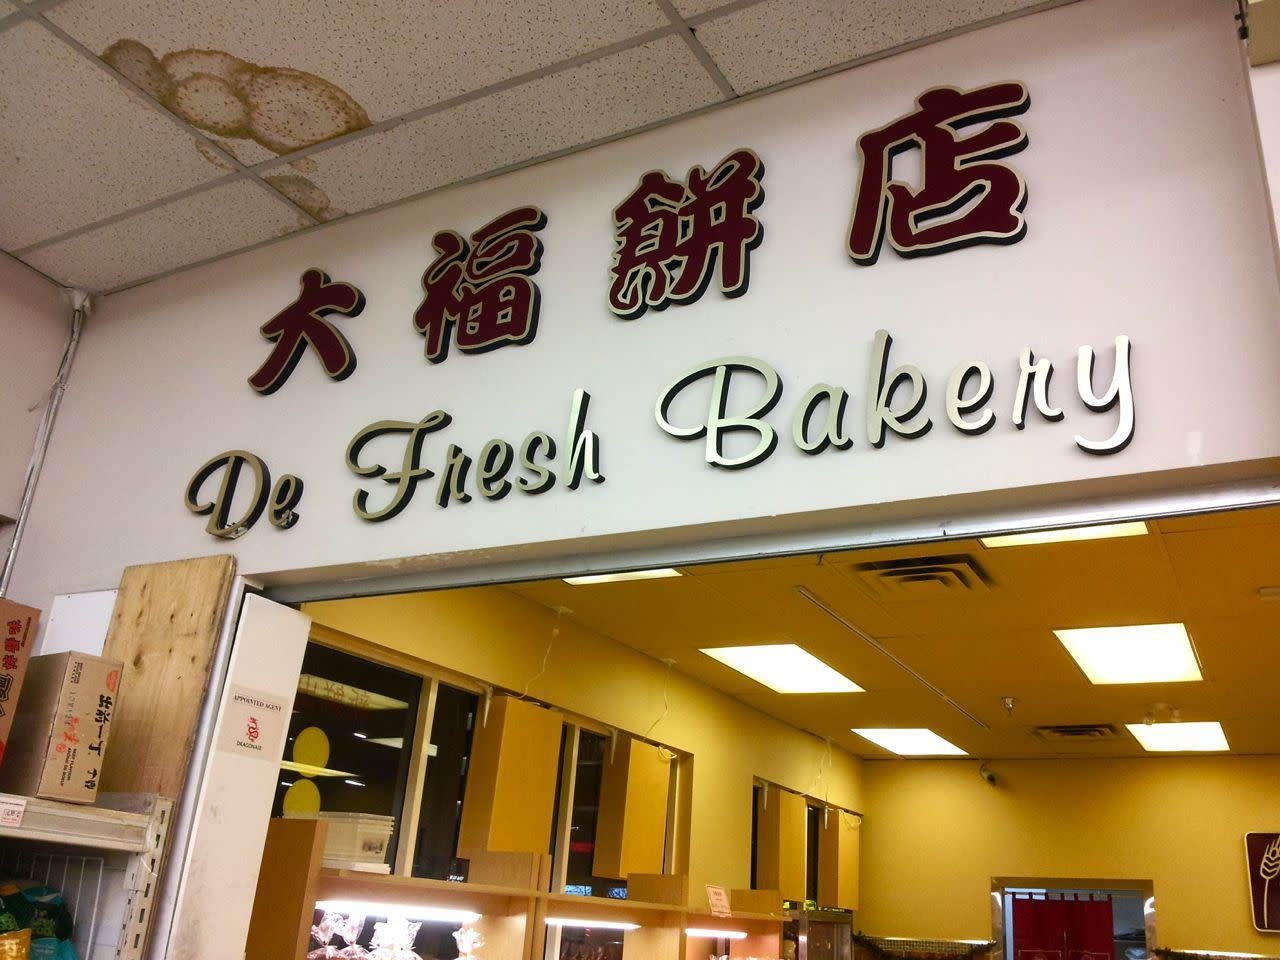 De Fresh bakery